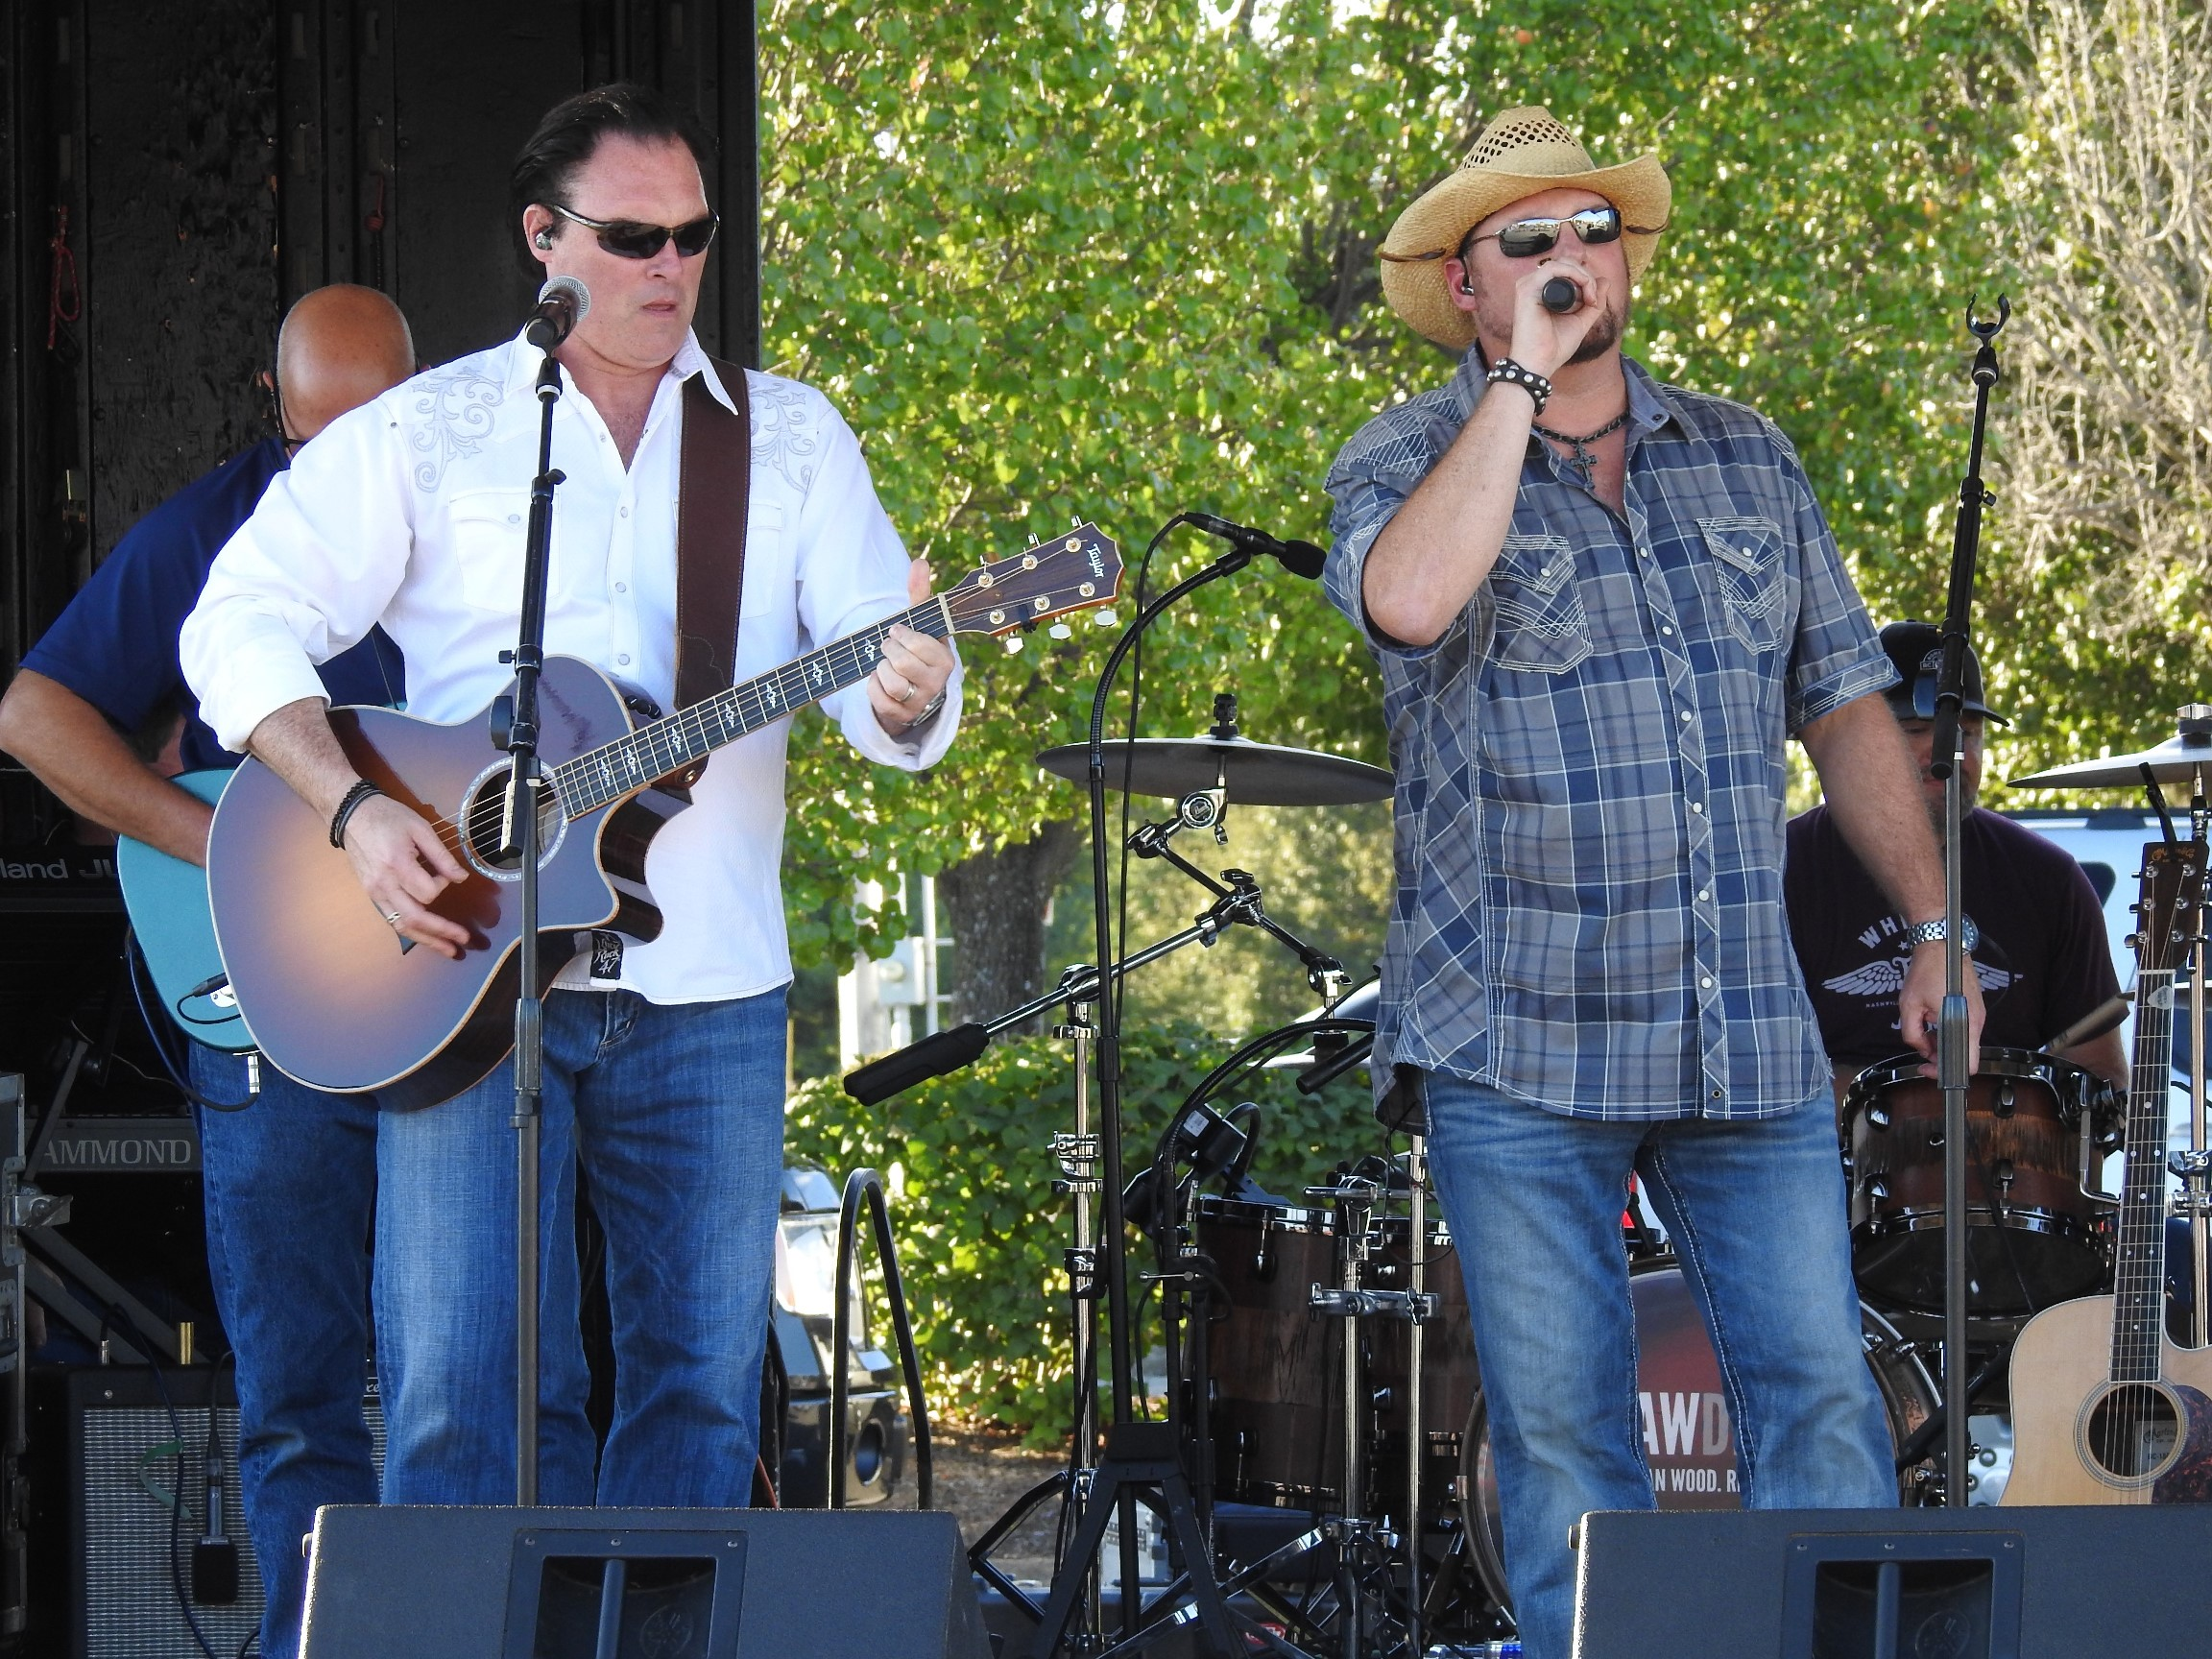 Smith & Wesley bring the best of country music to Ultimate Man Expo